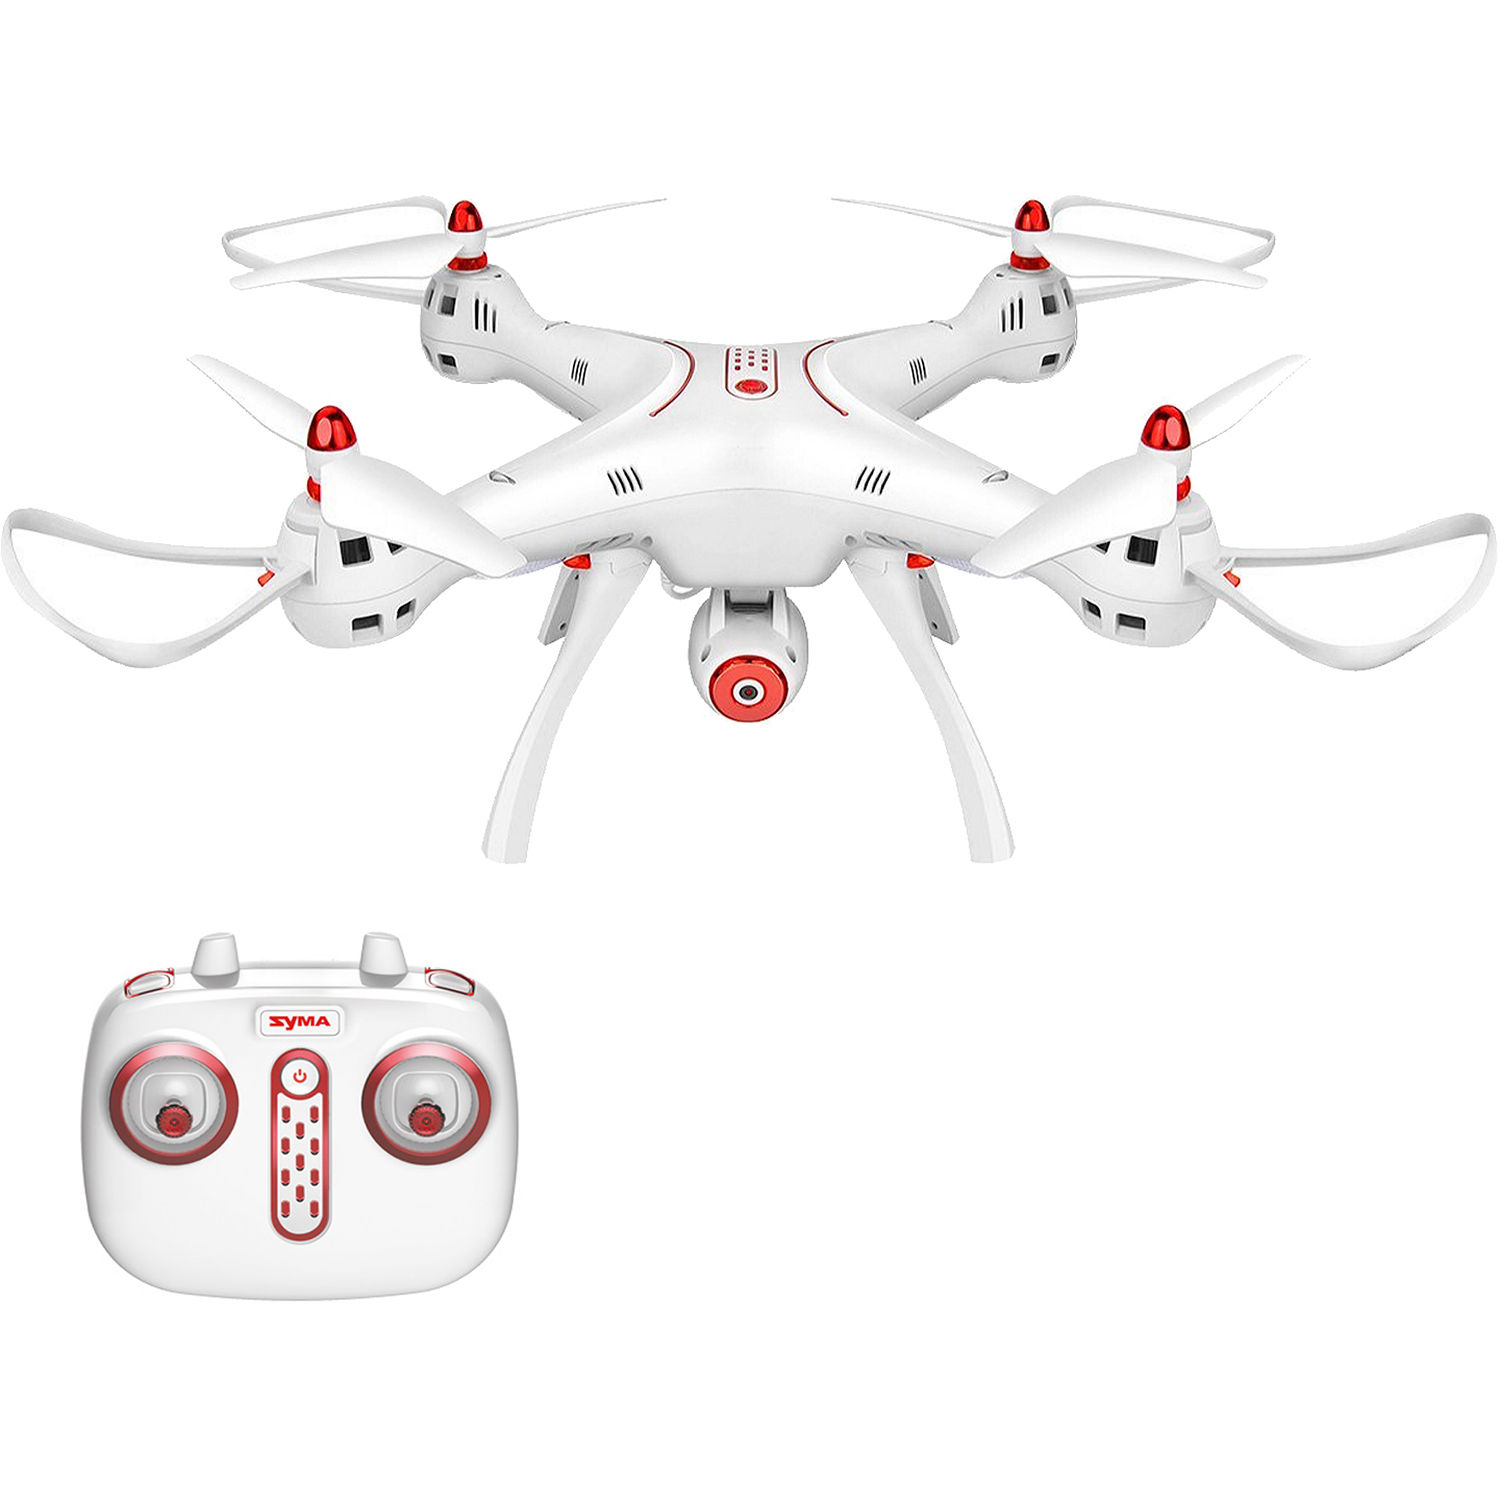 Syma X8sw Fpv Real Time Quadcopter With 720p Wi Fi Camera 61179 Radio Control Circuit For Rc Planes 4